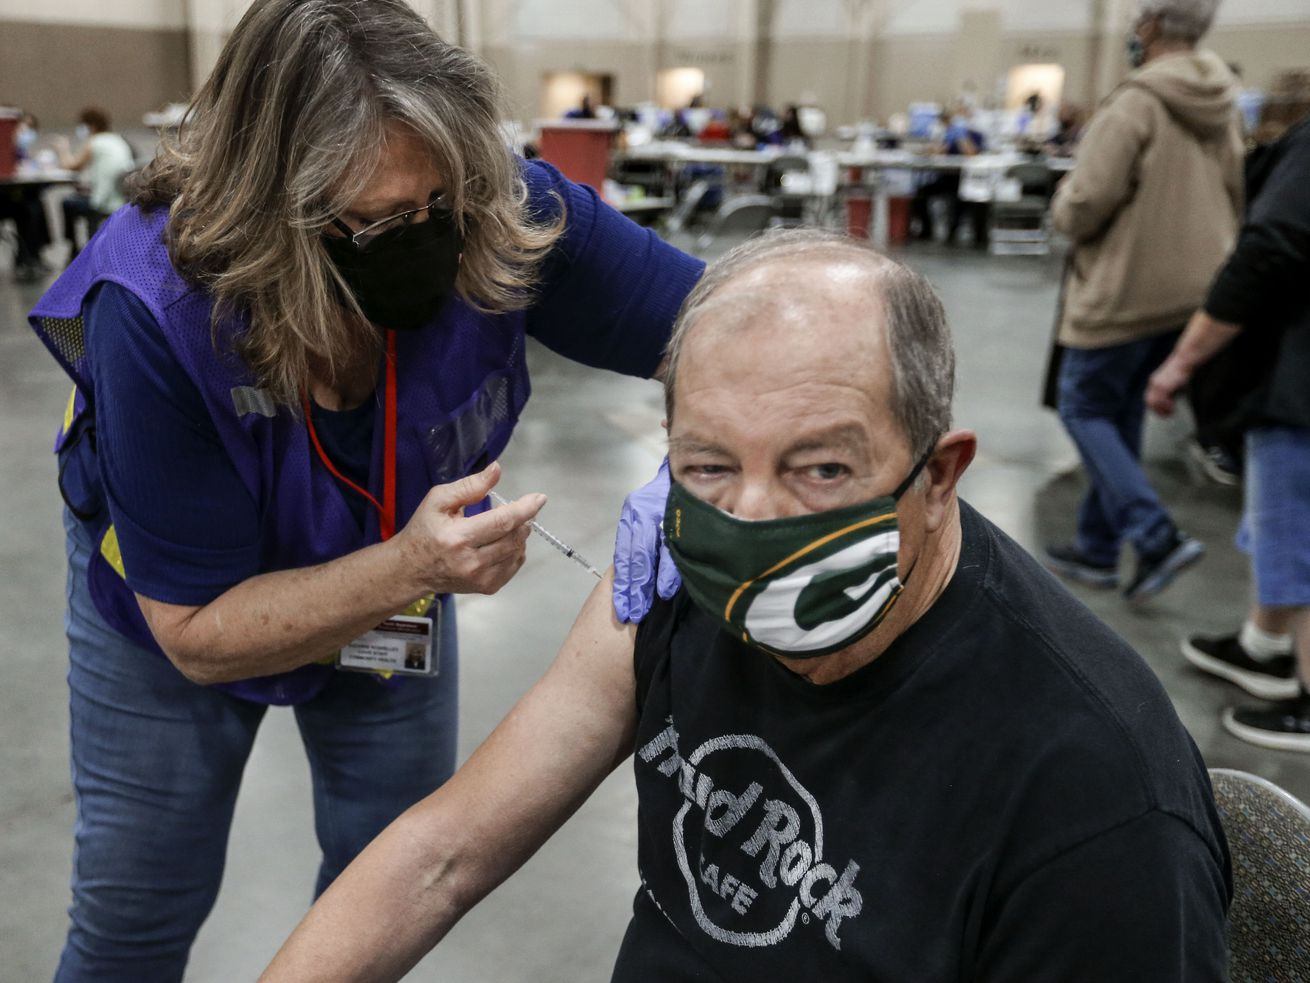 Suzanne Roskelley, left, gives Bob Olschesky, of West Valley City, a COVID-19 vaccination at the Mountain America Exposition Center in Sandy on Thursday, Feb. 11, 2021.